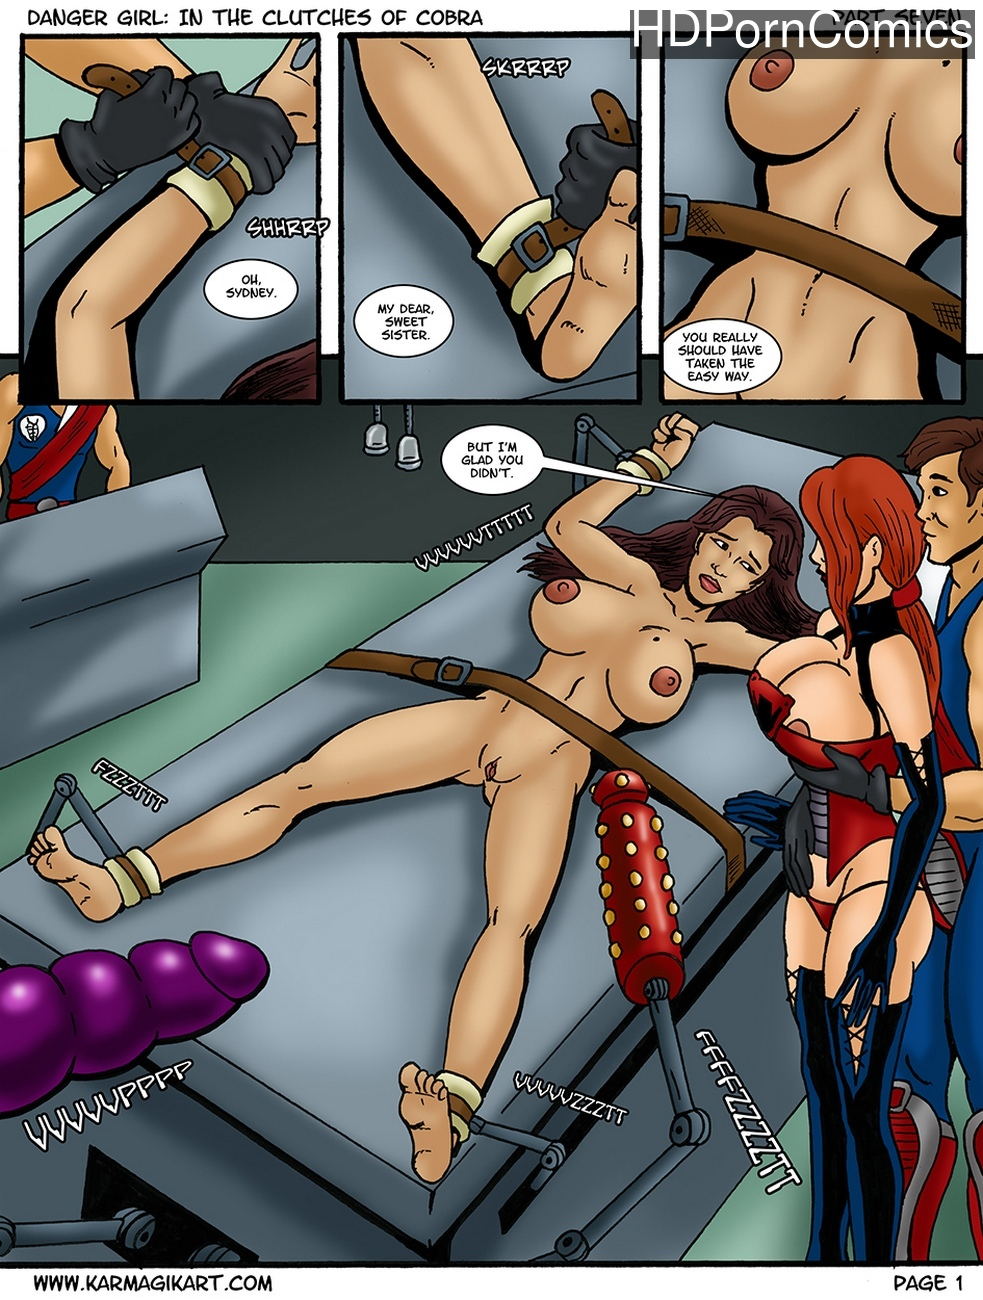 Danger-Girl-In-The-Clutches-Of-Cobra-7 1 free porn comics